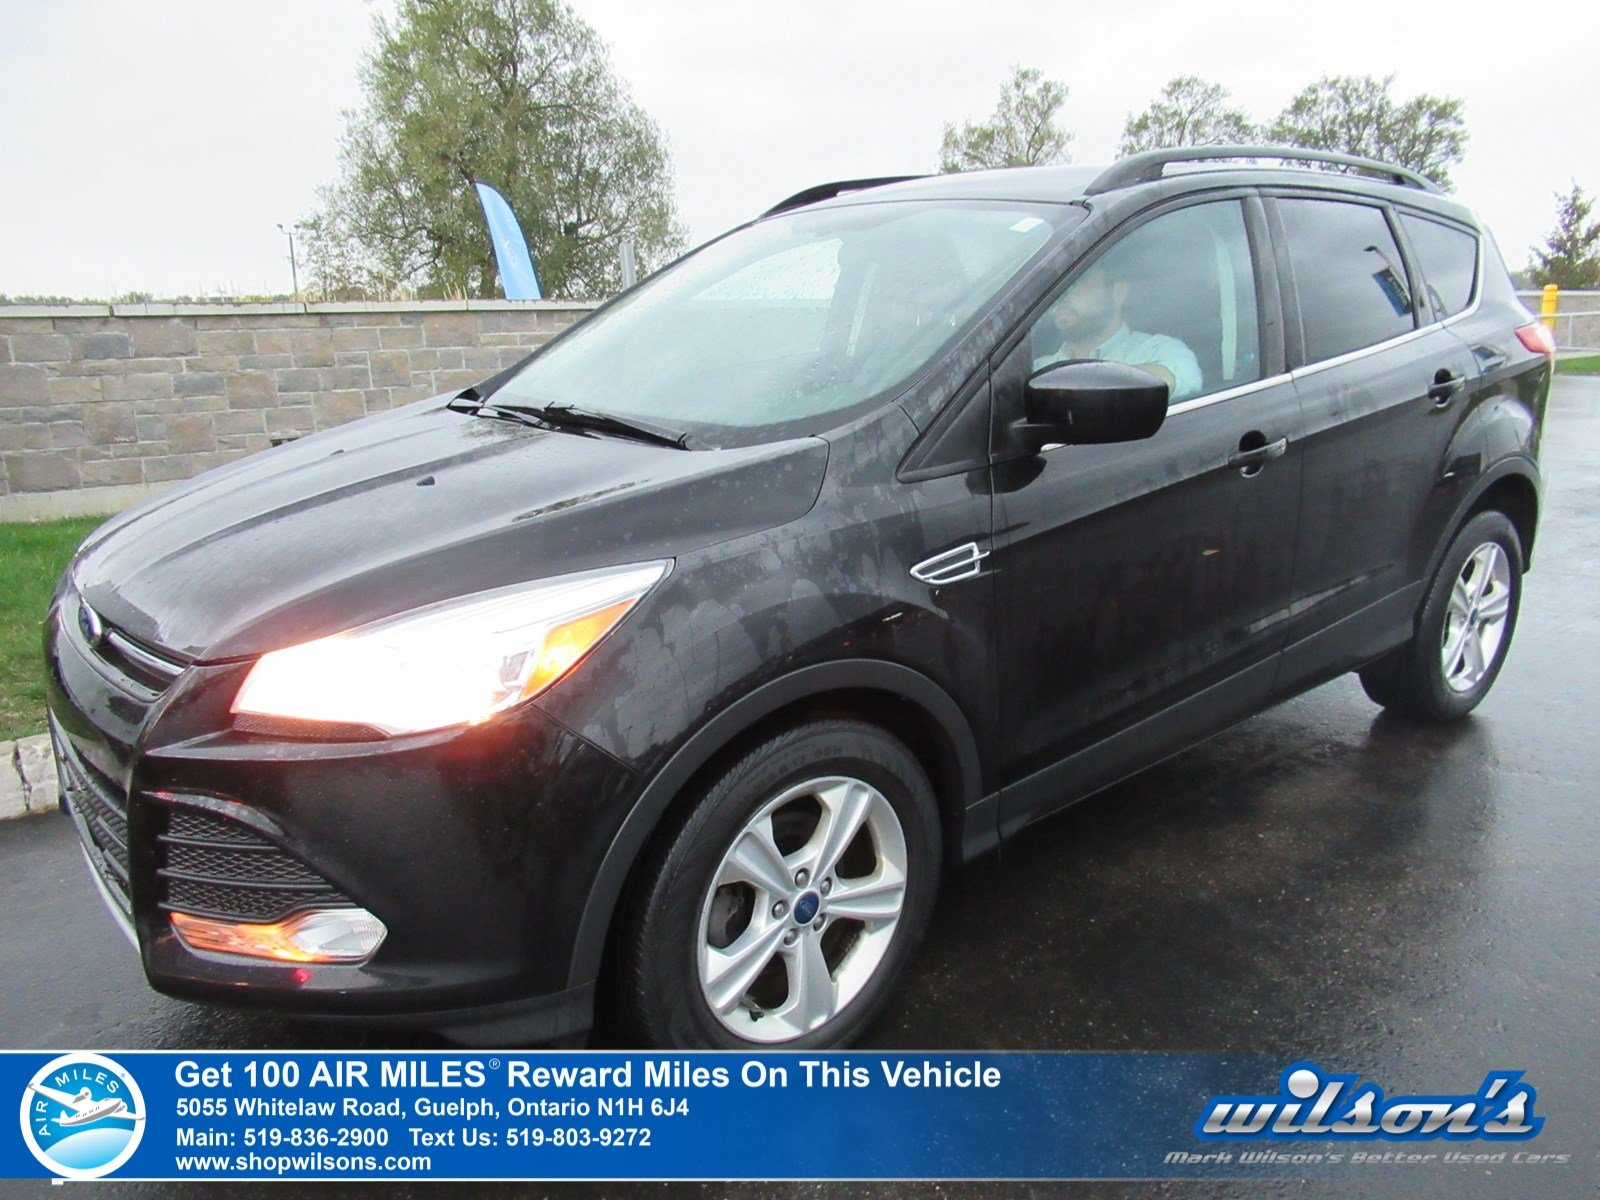 2014 Ford Escape Tires >> Certified Pre Owned 2014 Ford Escape Se New Tires Navigation Rear Camera Bluetooth Heated Seats Power Driver S Seat And More